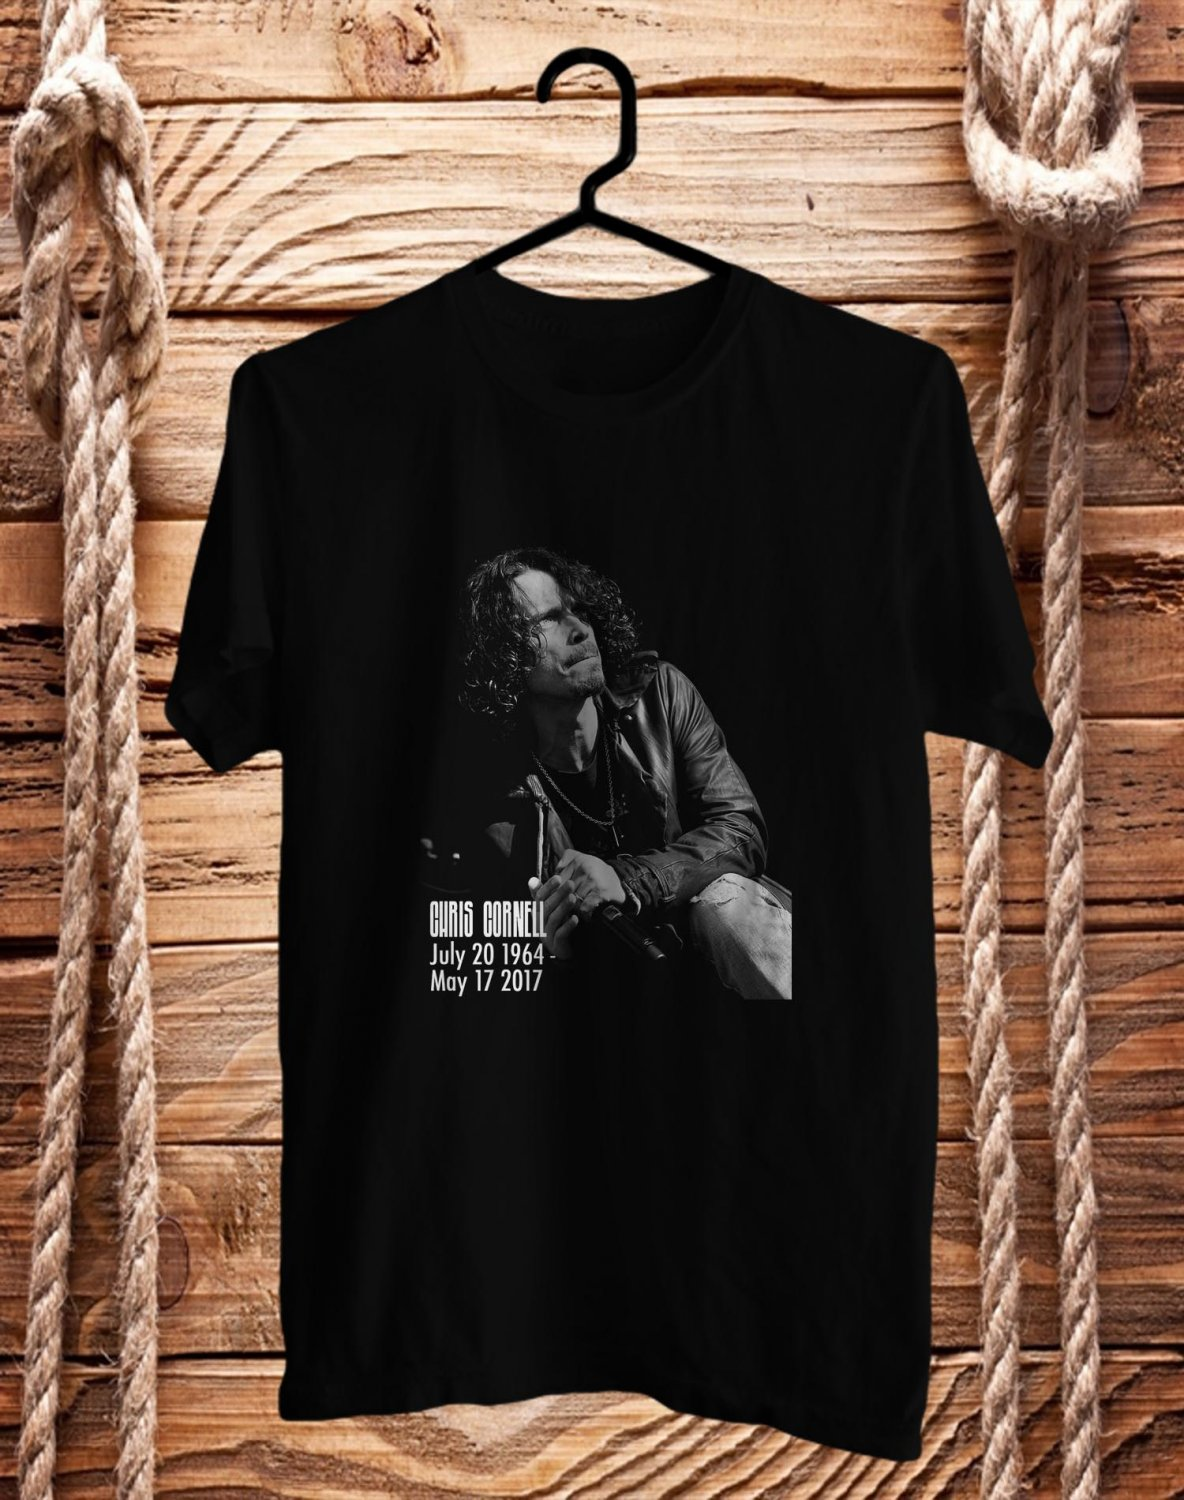 Tribute to Chris Cornell Soundgarden Vocalis BLack Tee's Front Side by Complexart